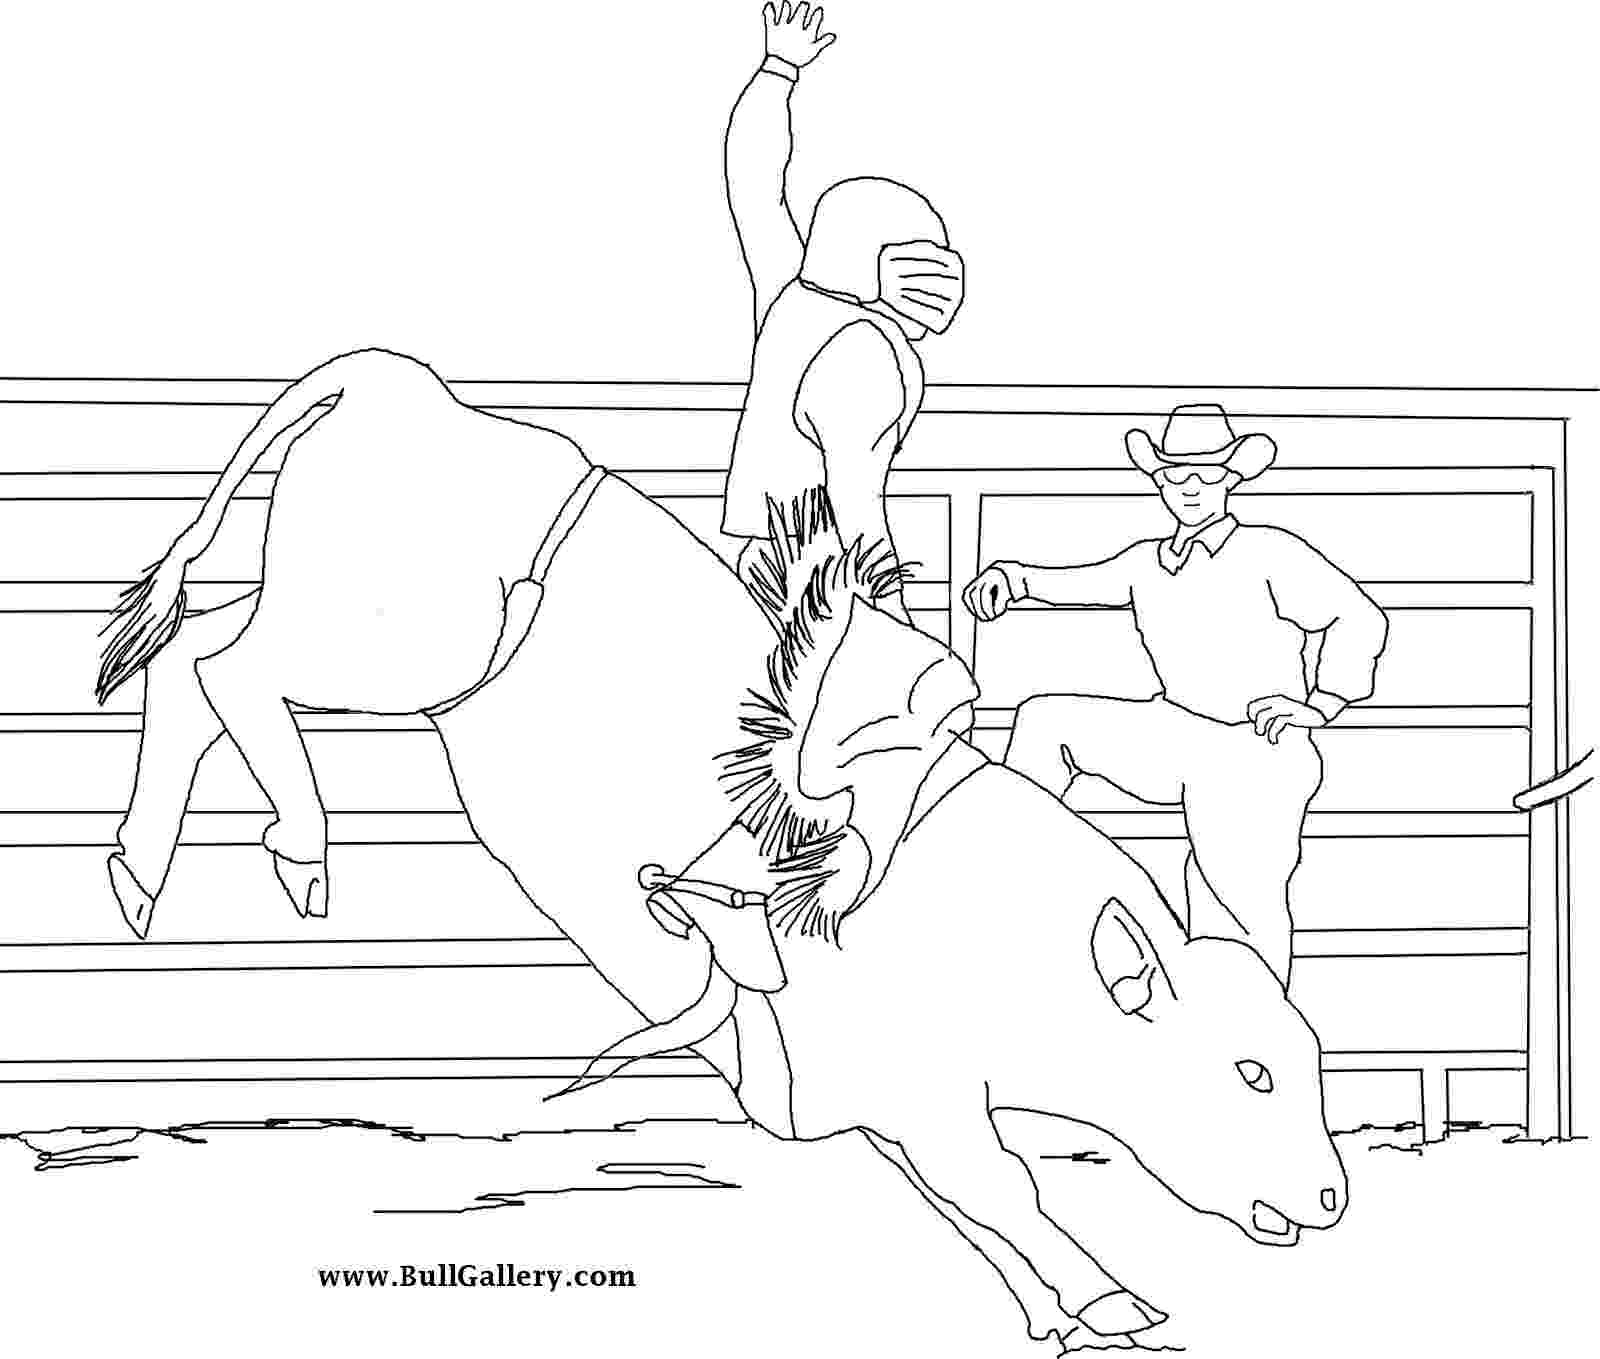 coloring pages of bull riding bull pictures to color free bull gallery bull pages coloring of riding